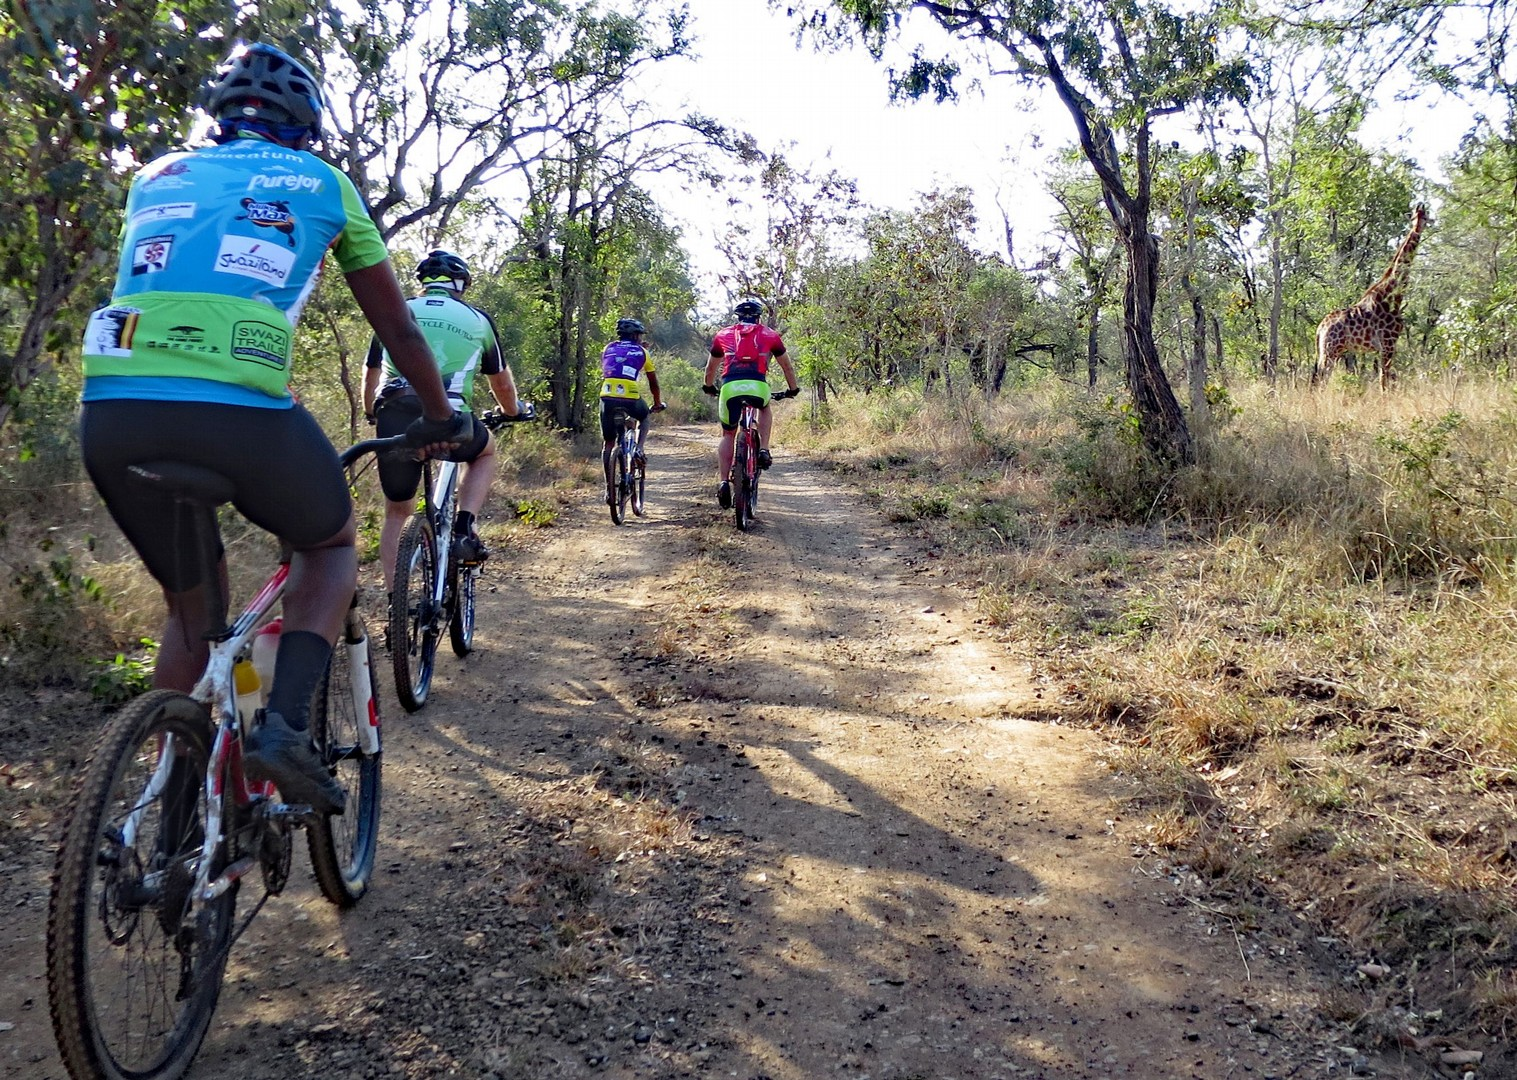 south-africa-guided-mountain-bike-holiday-africa-swaziland-singletrack-and-sundowners.jpg - Swaziland - Singletrack and Sundowners - Guided Mountain Bike Holiday - Mountain Biking